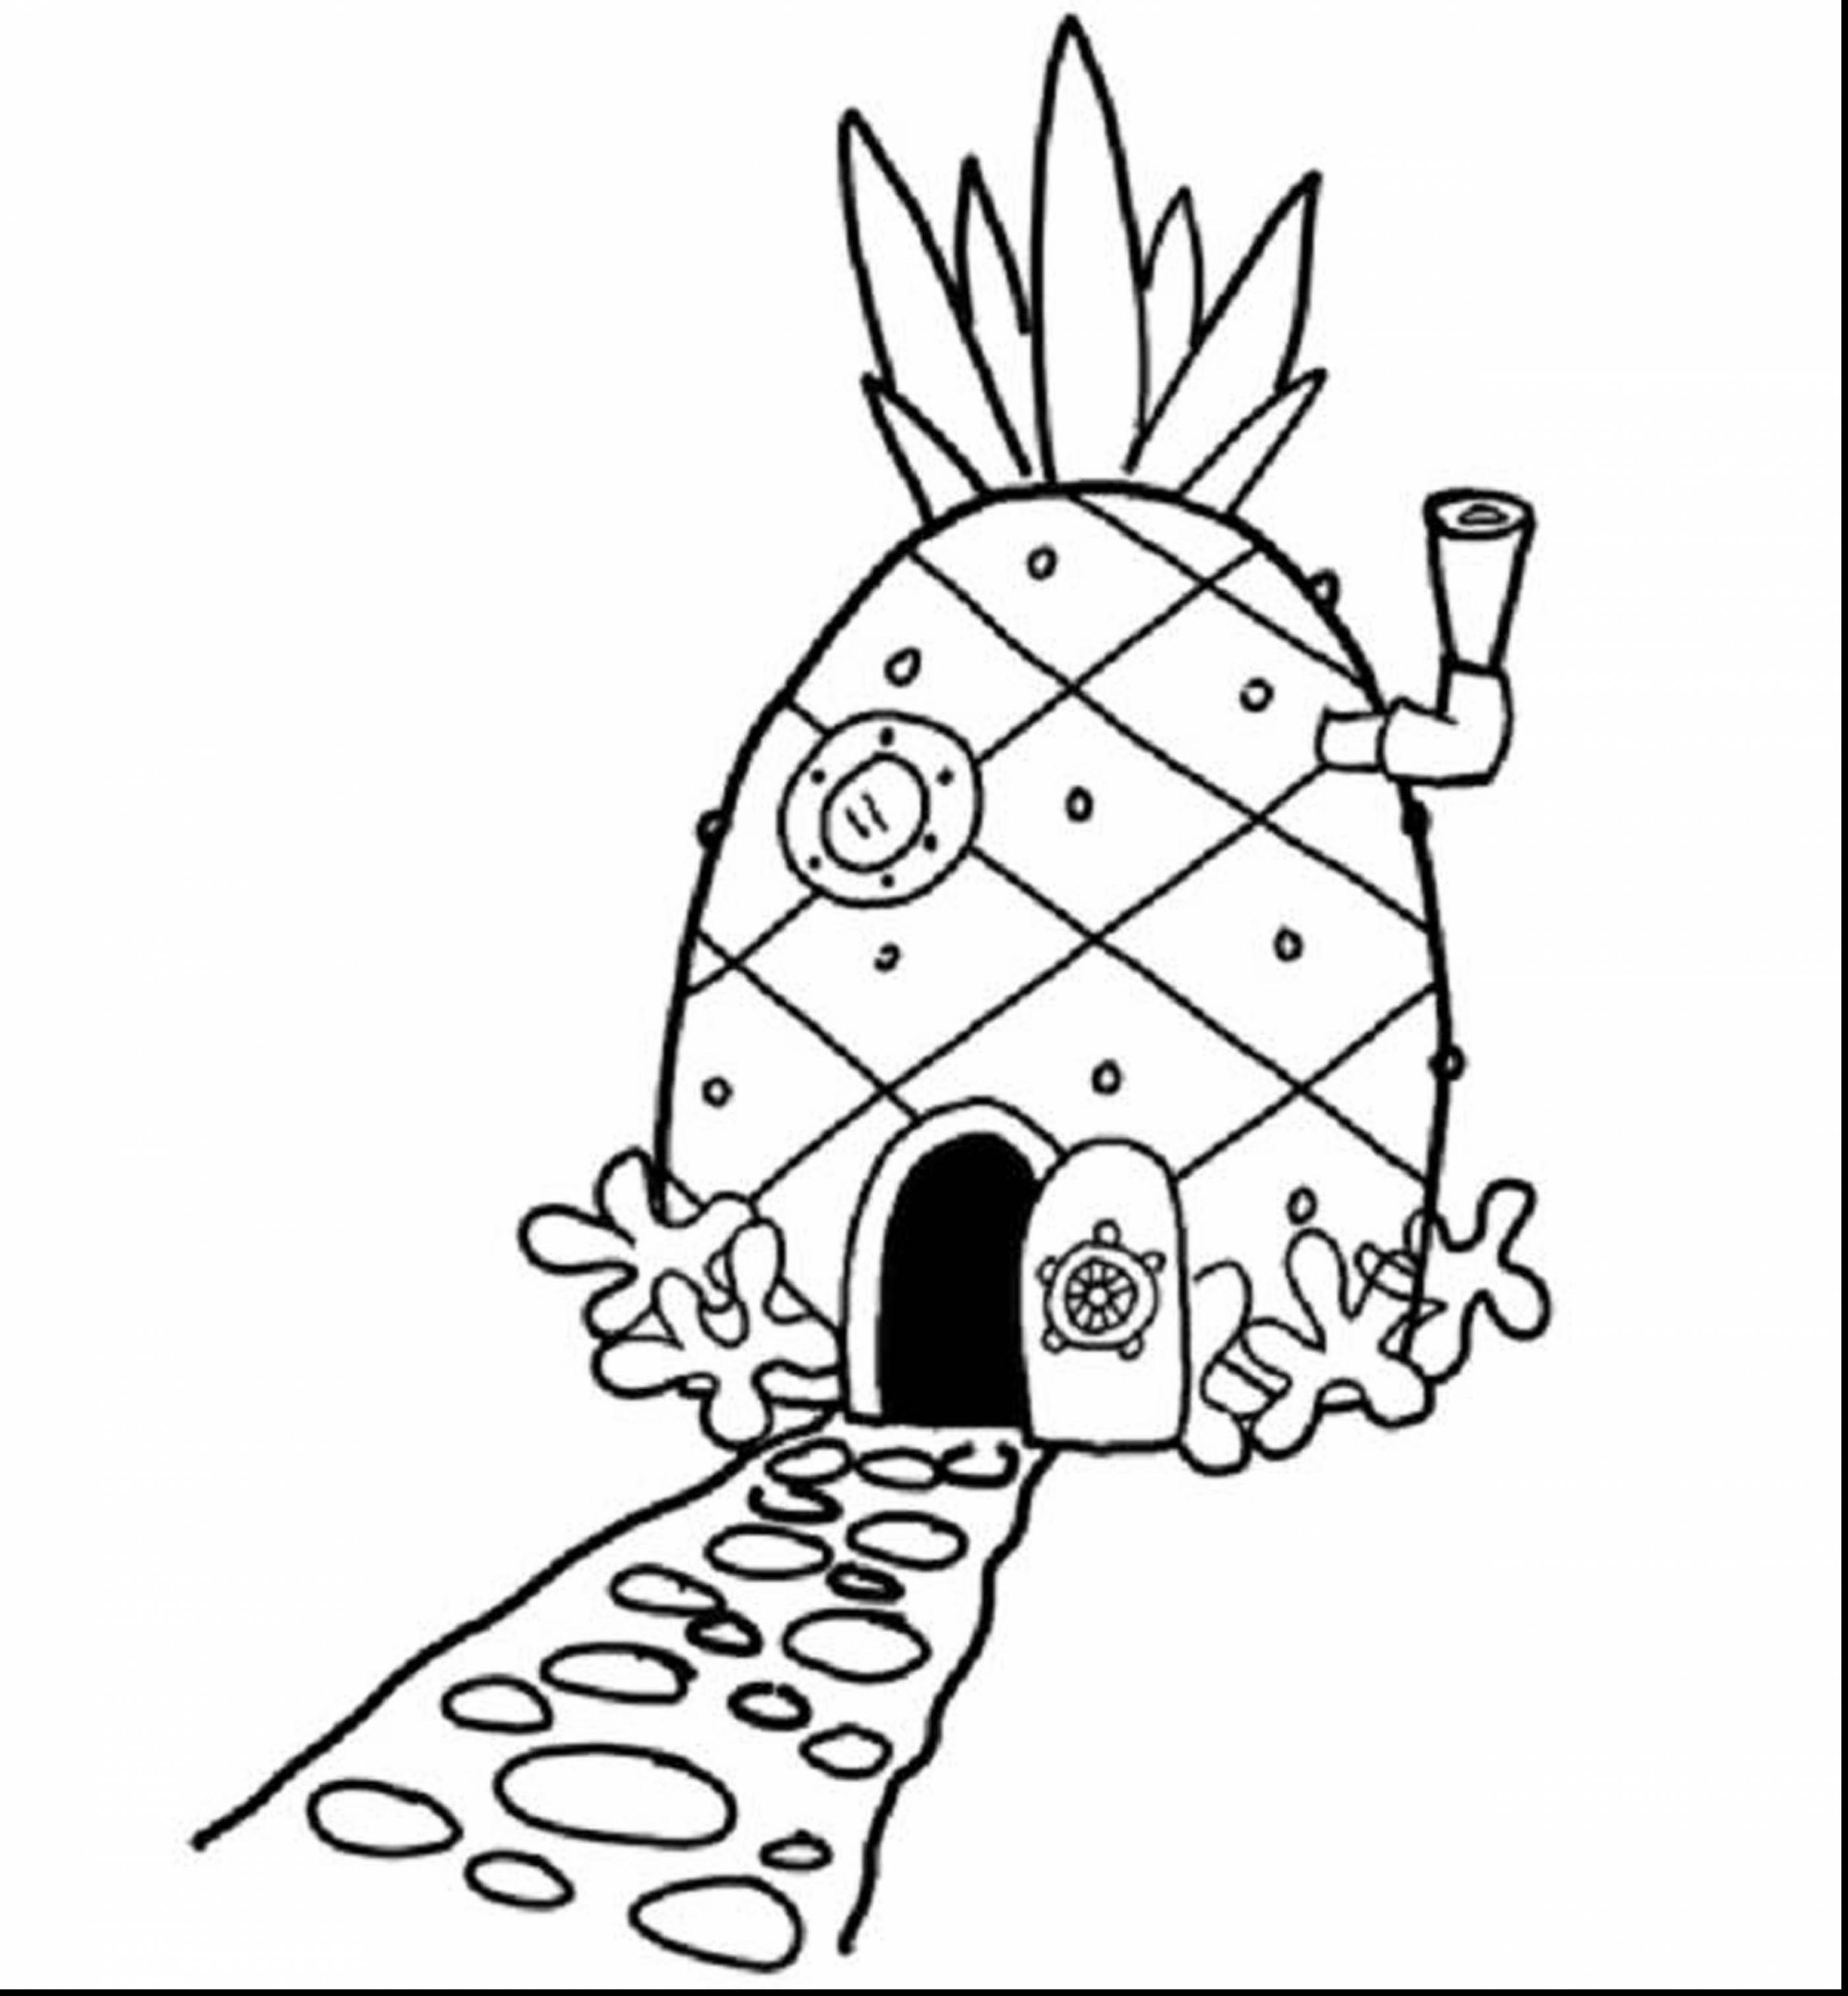 spongebobs pineapple house coloring pages spongebob and patrick drawing at getdrawings free download pineapple coloring pages spongebobs house